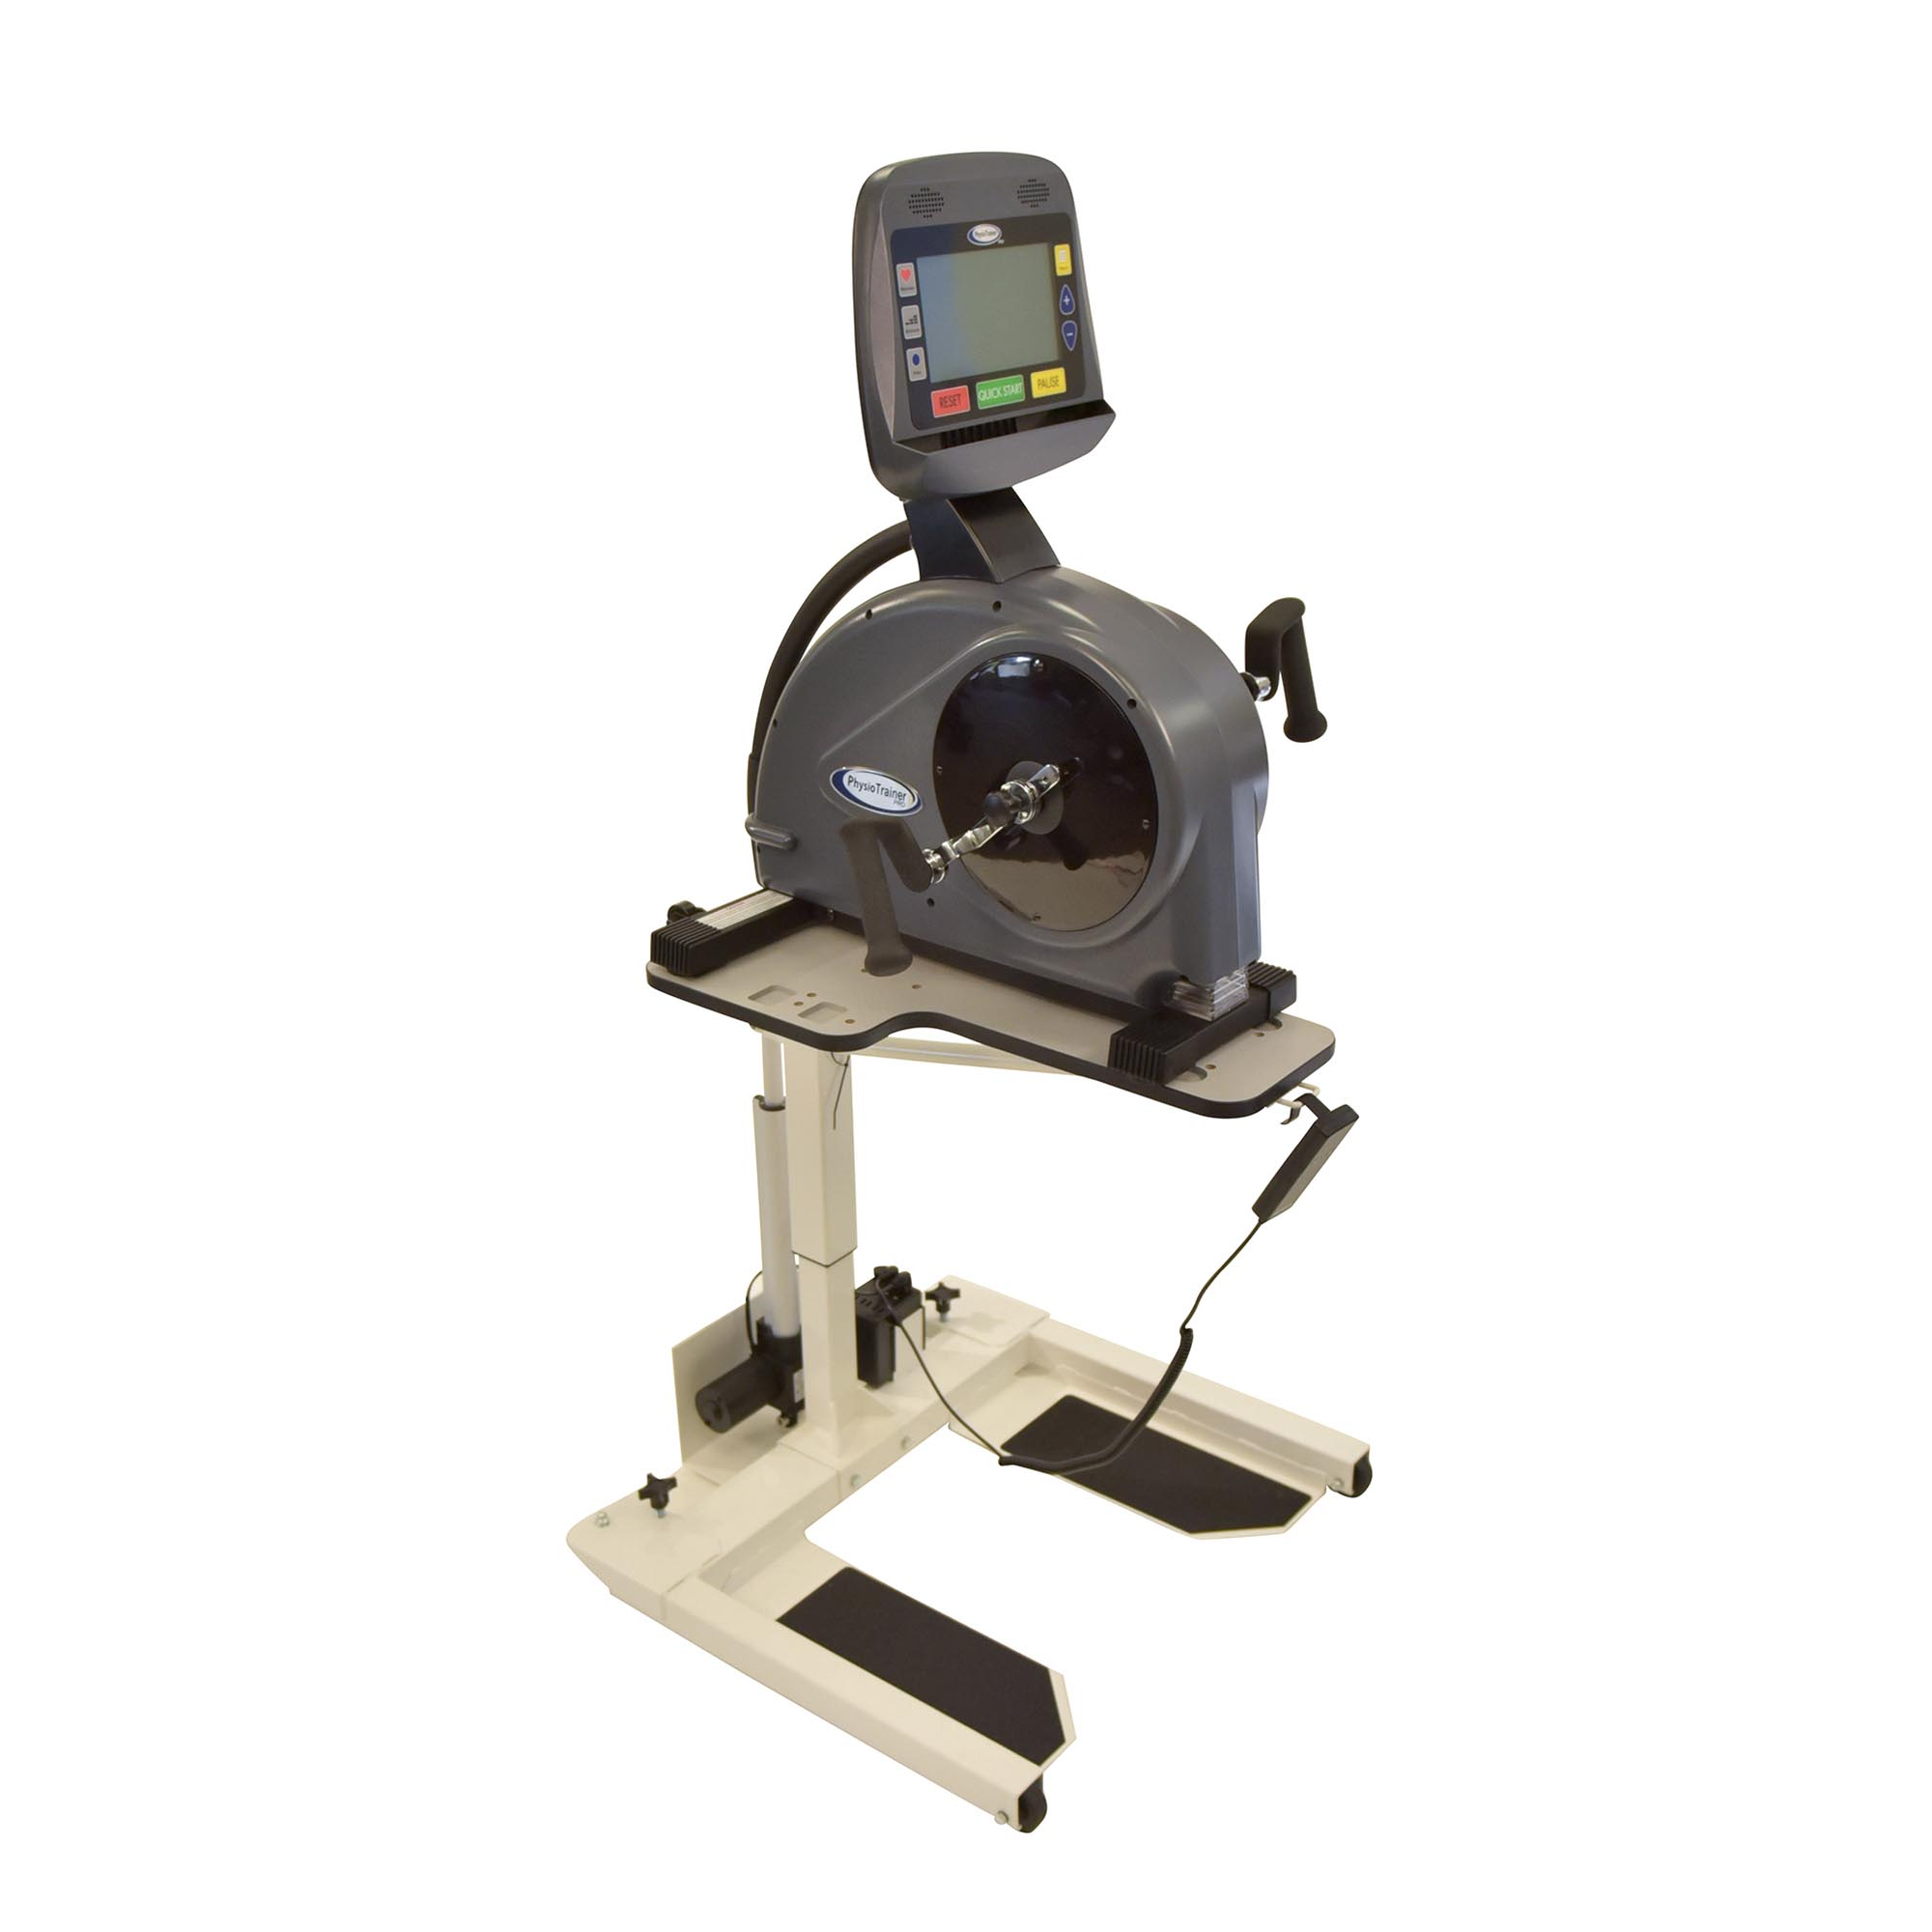 PhysioTrainer PRO Package - Includes Upper Body Ergometer w/ Motorized Table (Commercial Grade Quality)